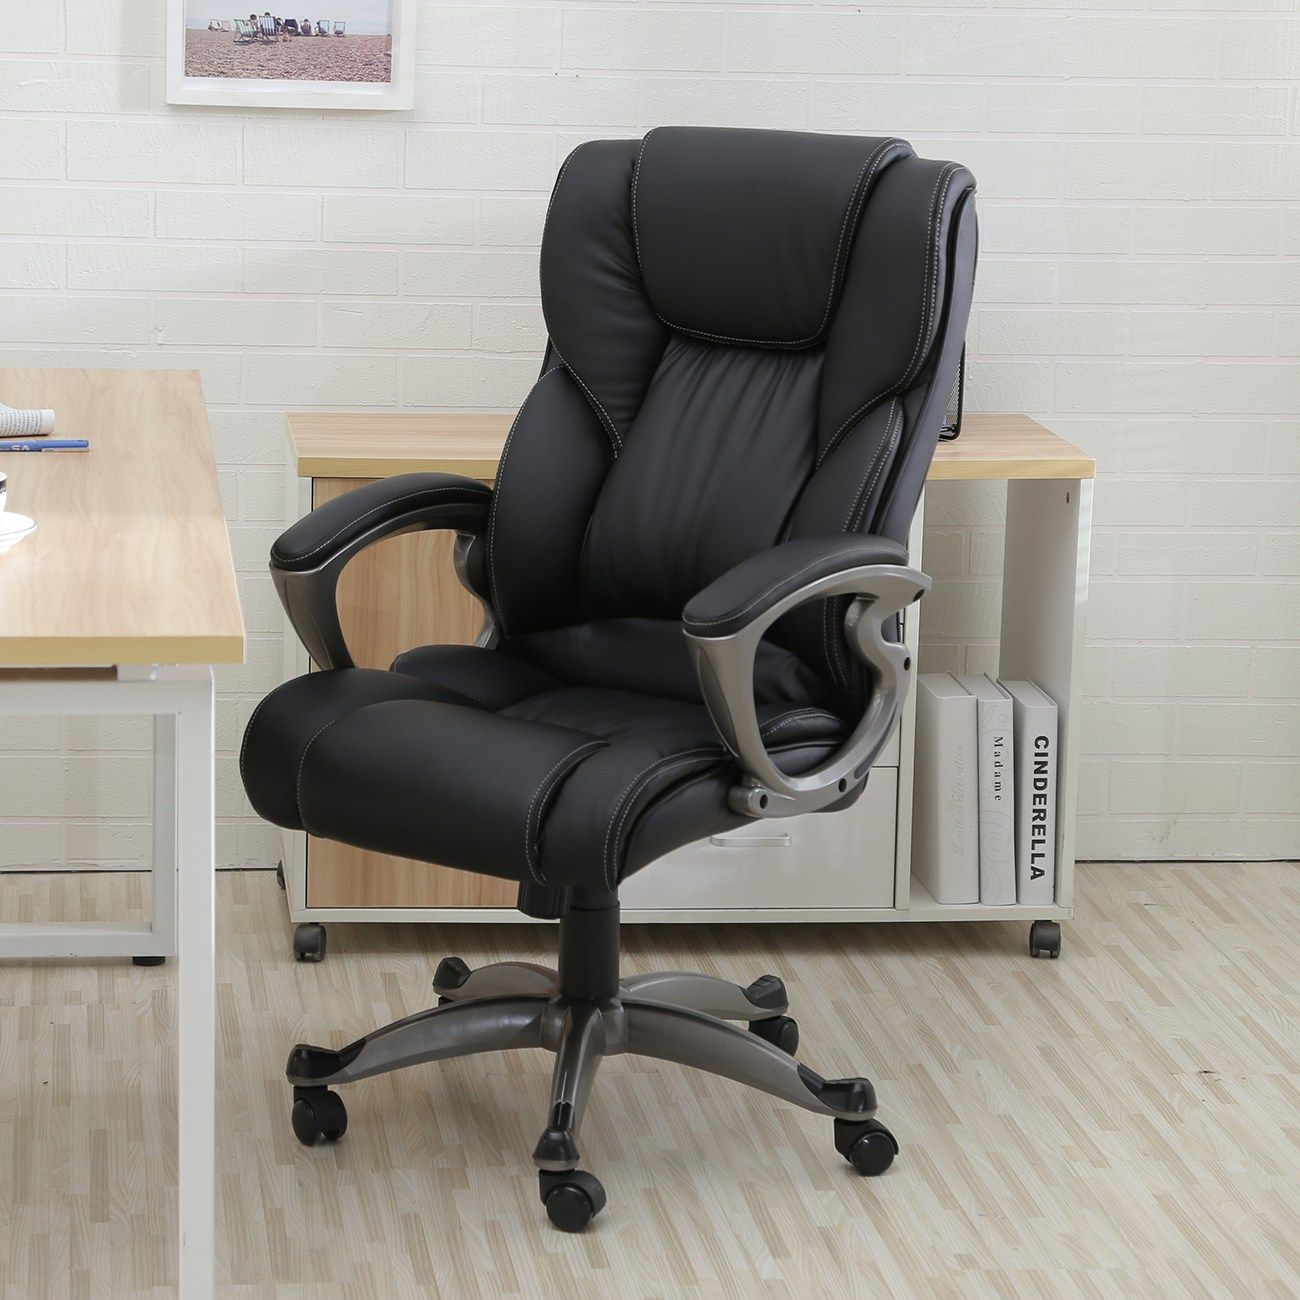 How to choose a computer chair 54